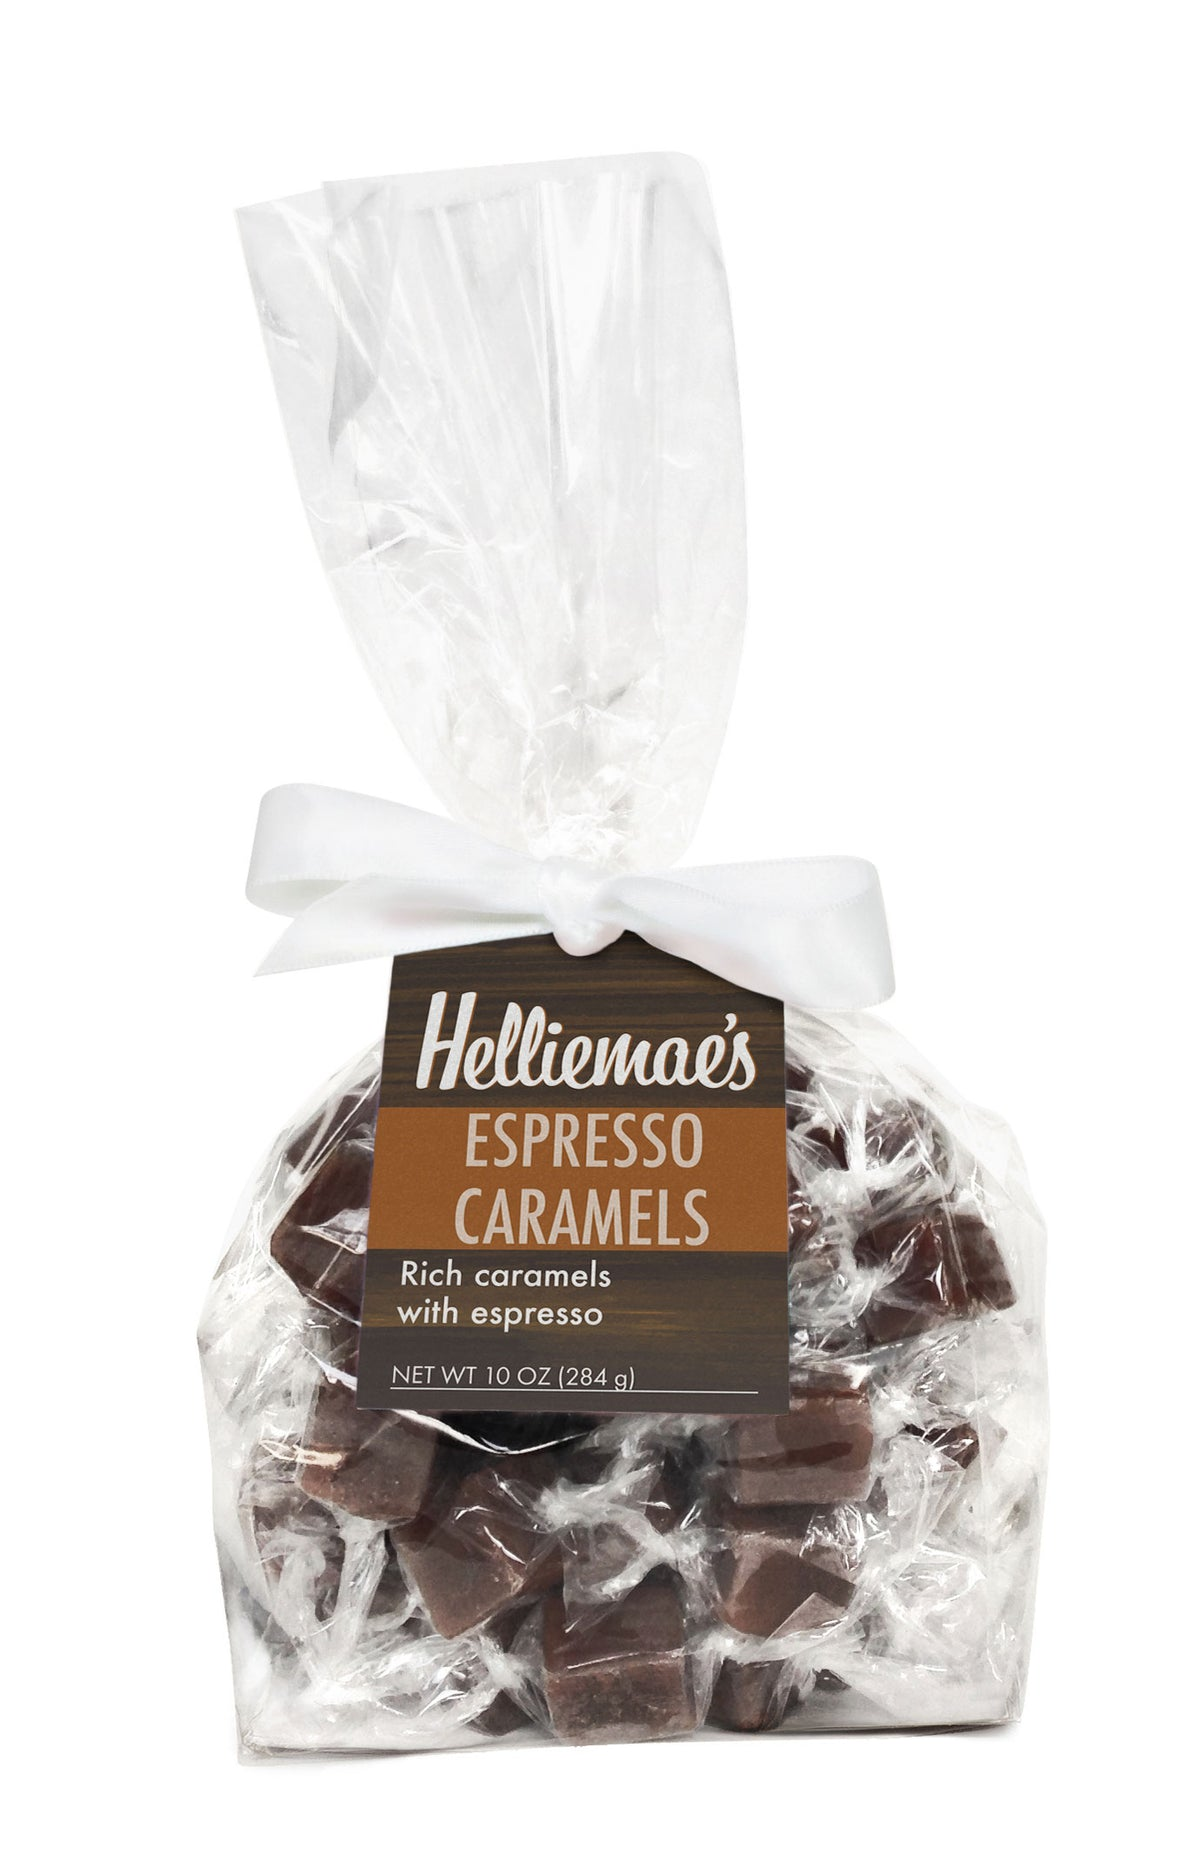 Helliemae's Espresso Caramels large gift bag, clear cello bag with gathered top, fastened with white satin ribbon and colorful brown hangtag, with effect of milk paint on a barn wall.